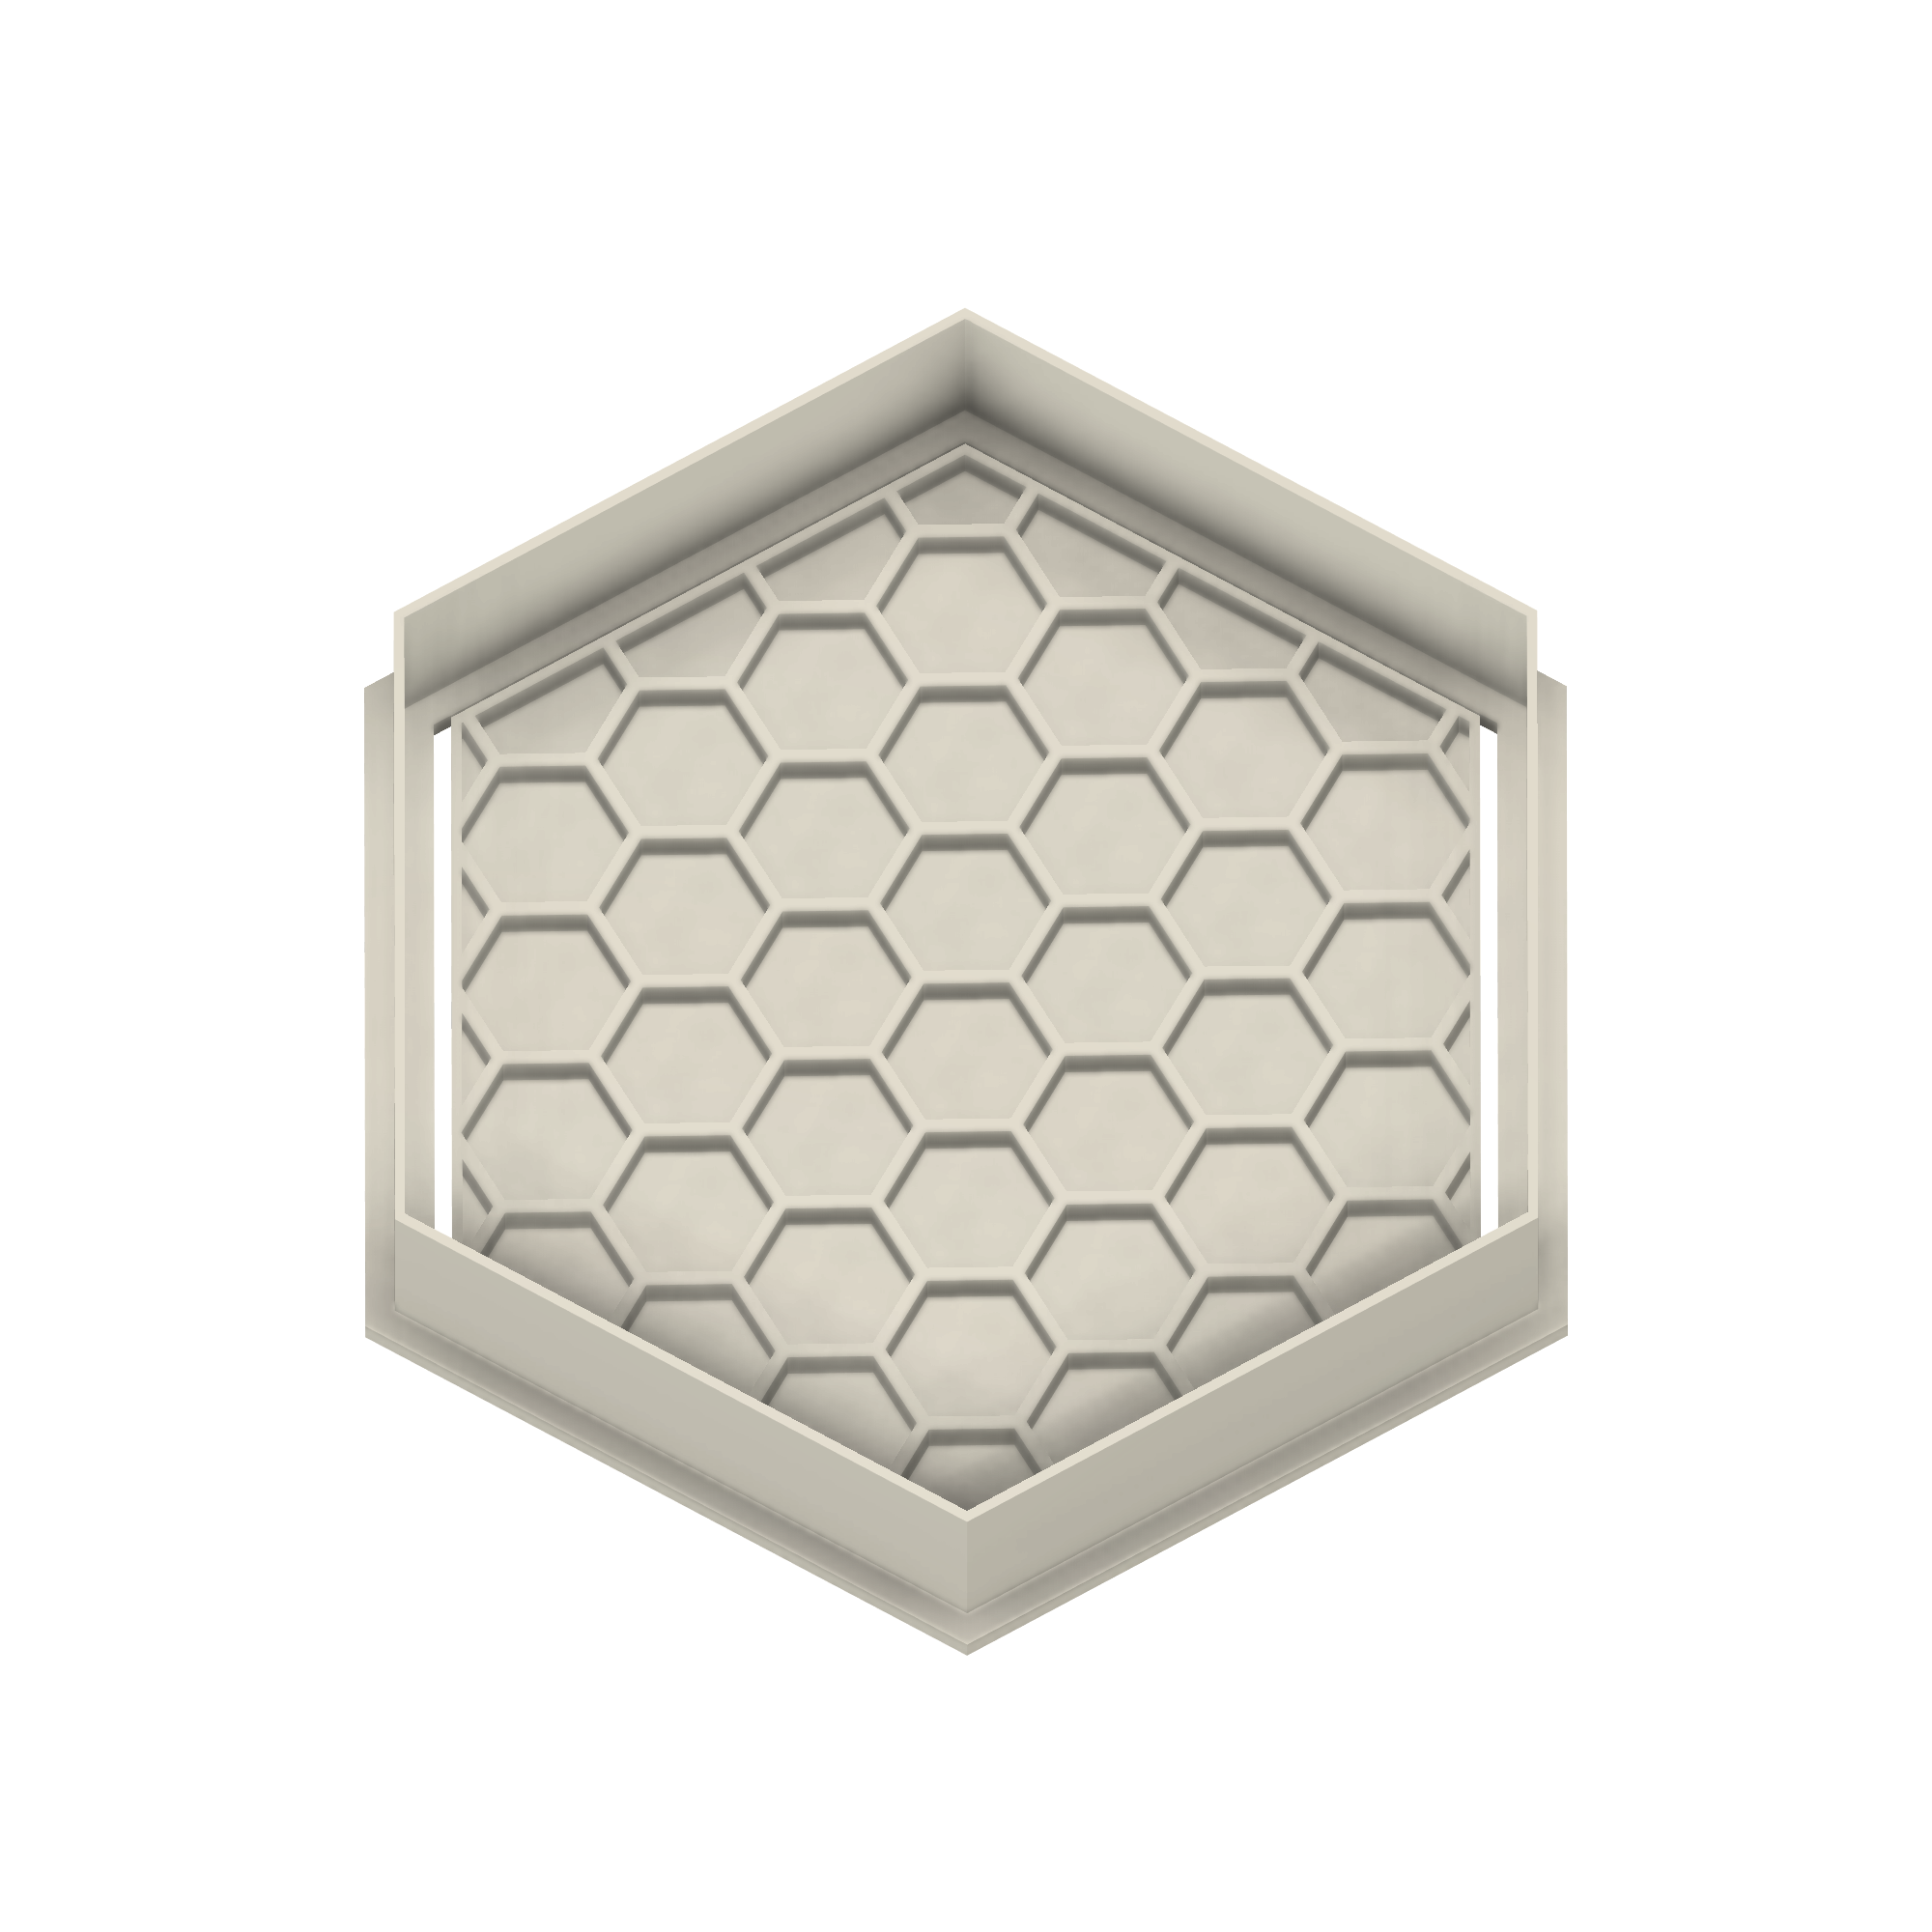 Honeycomb Hexagon Cookie Cutter - Dolce3D Cookie Cutters